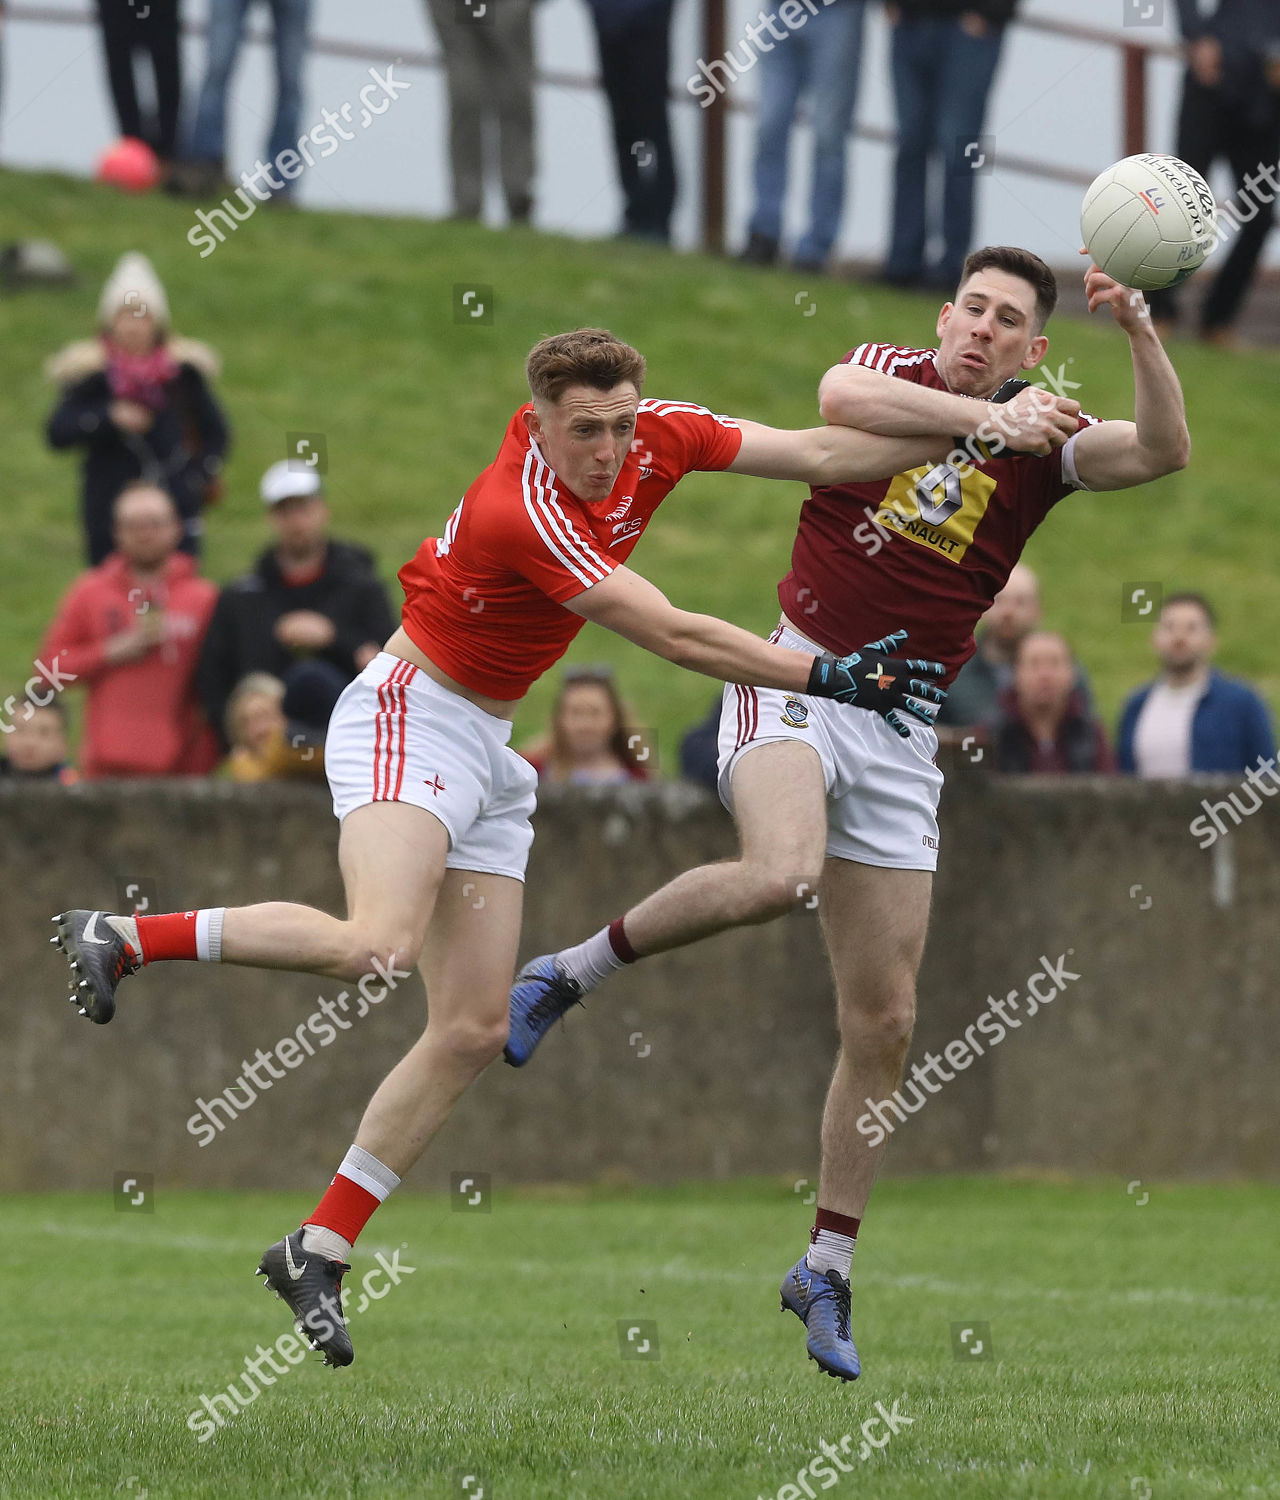 Byrne insists Louth are determined not to lose league